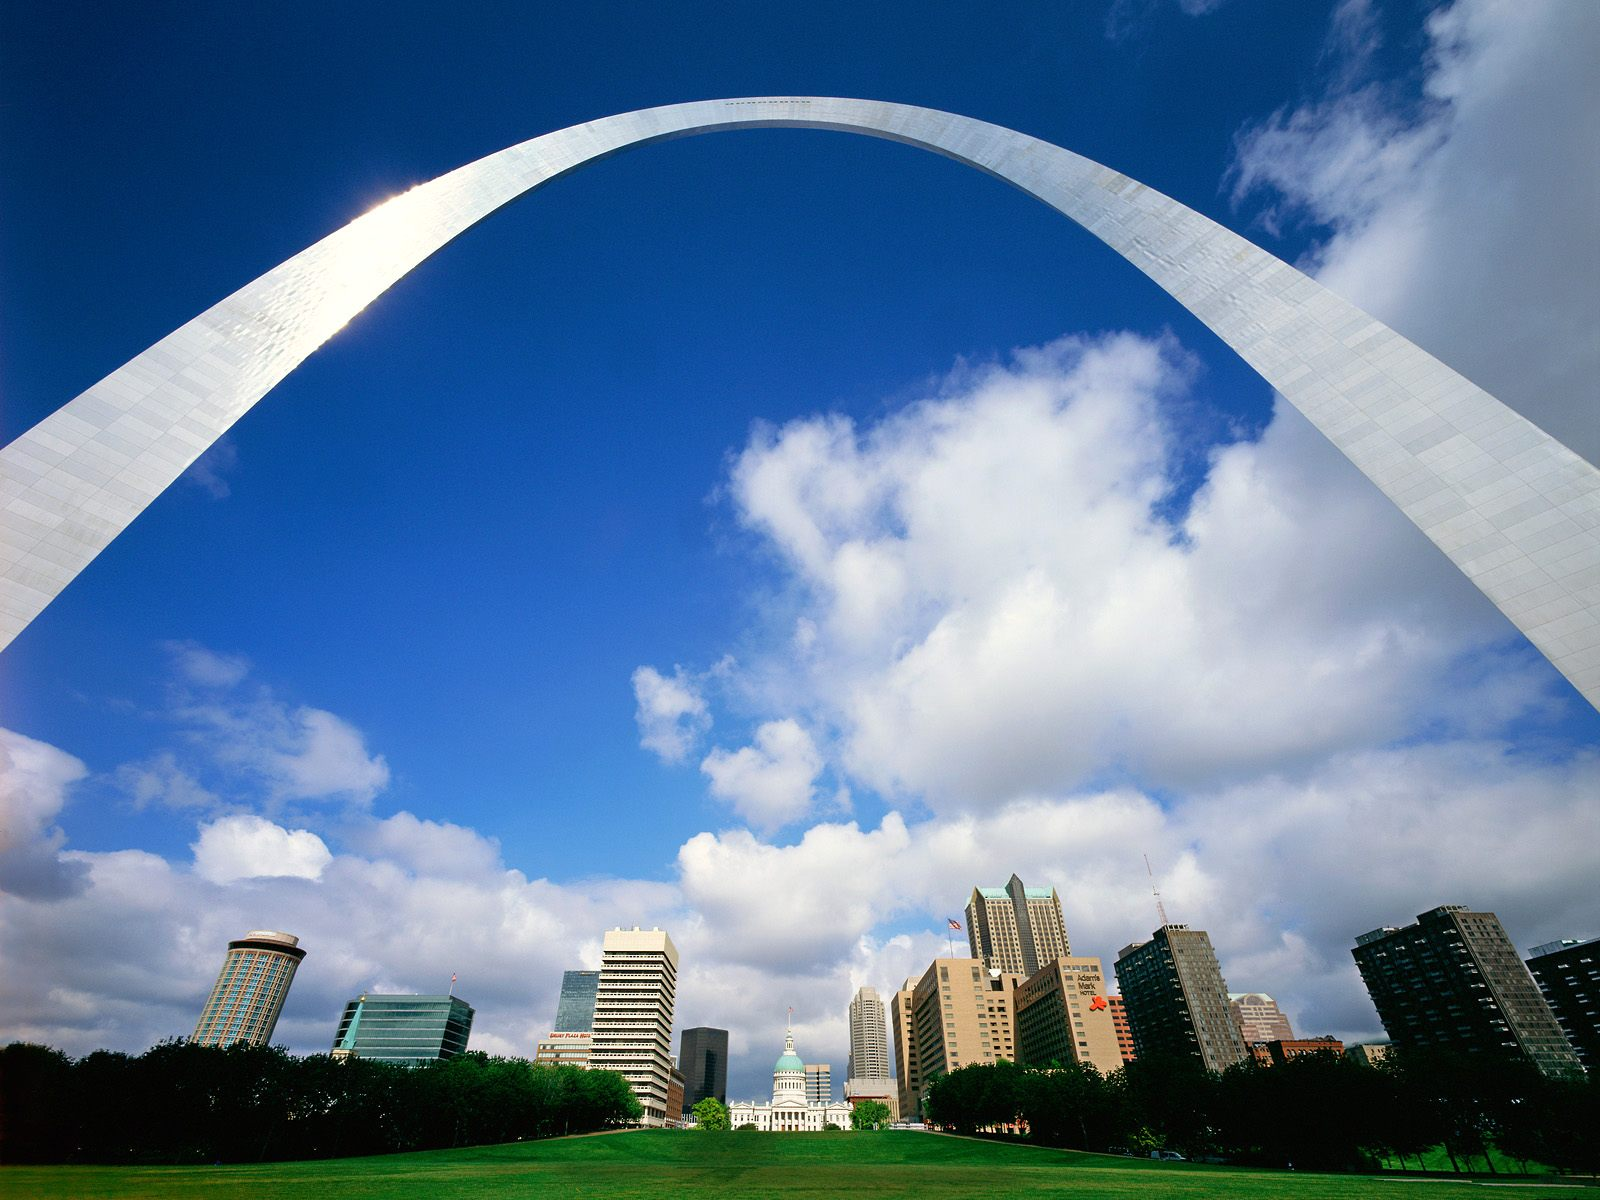 gateway arch development The project is the largest public-private partnership in national park service history, led by the gateway arch park foundation, bi-state development agency, jefferson national parks association, great rivers greenway, and the national park service.